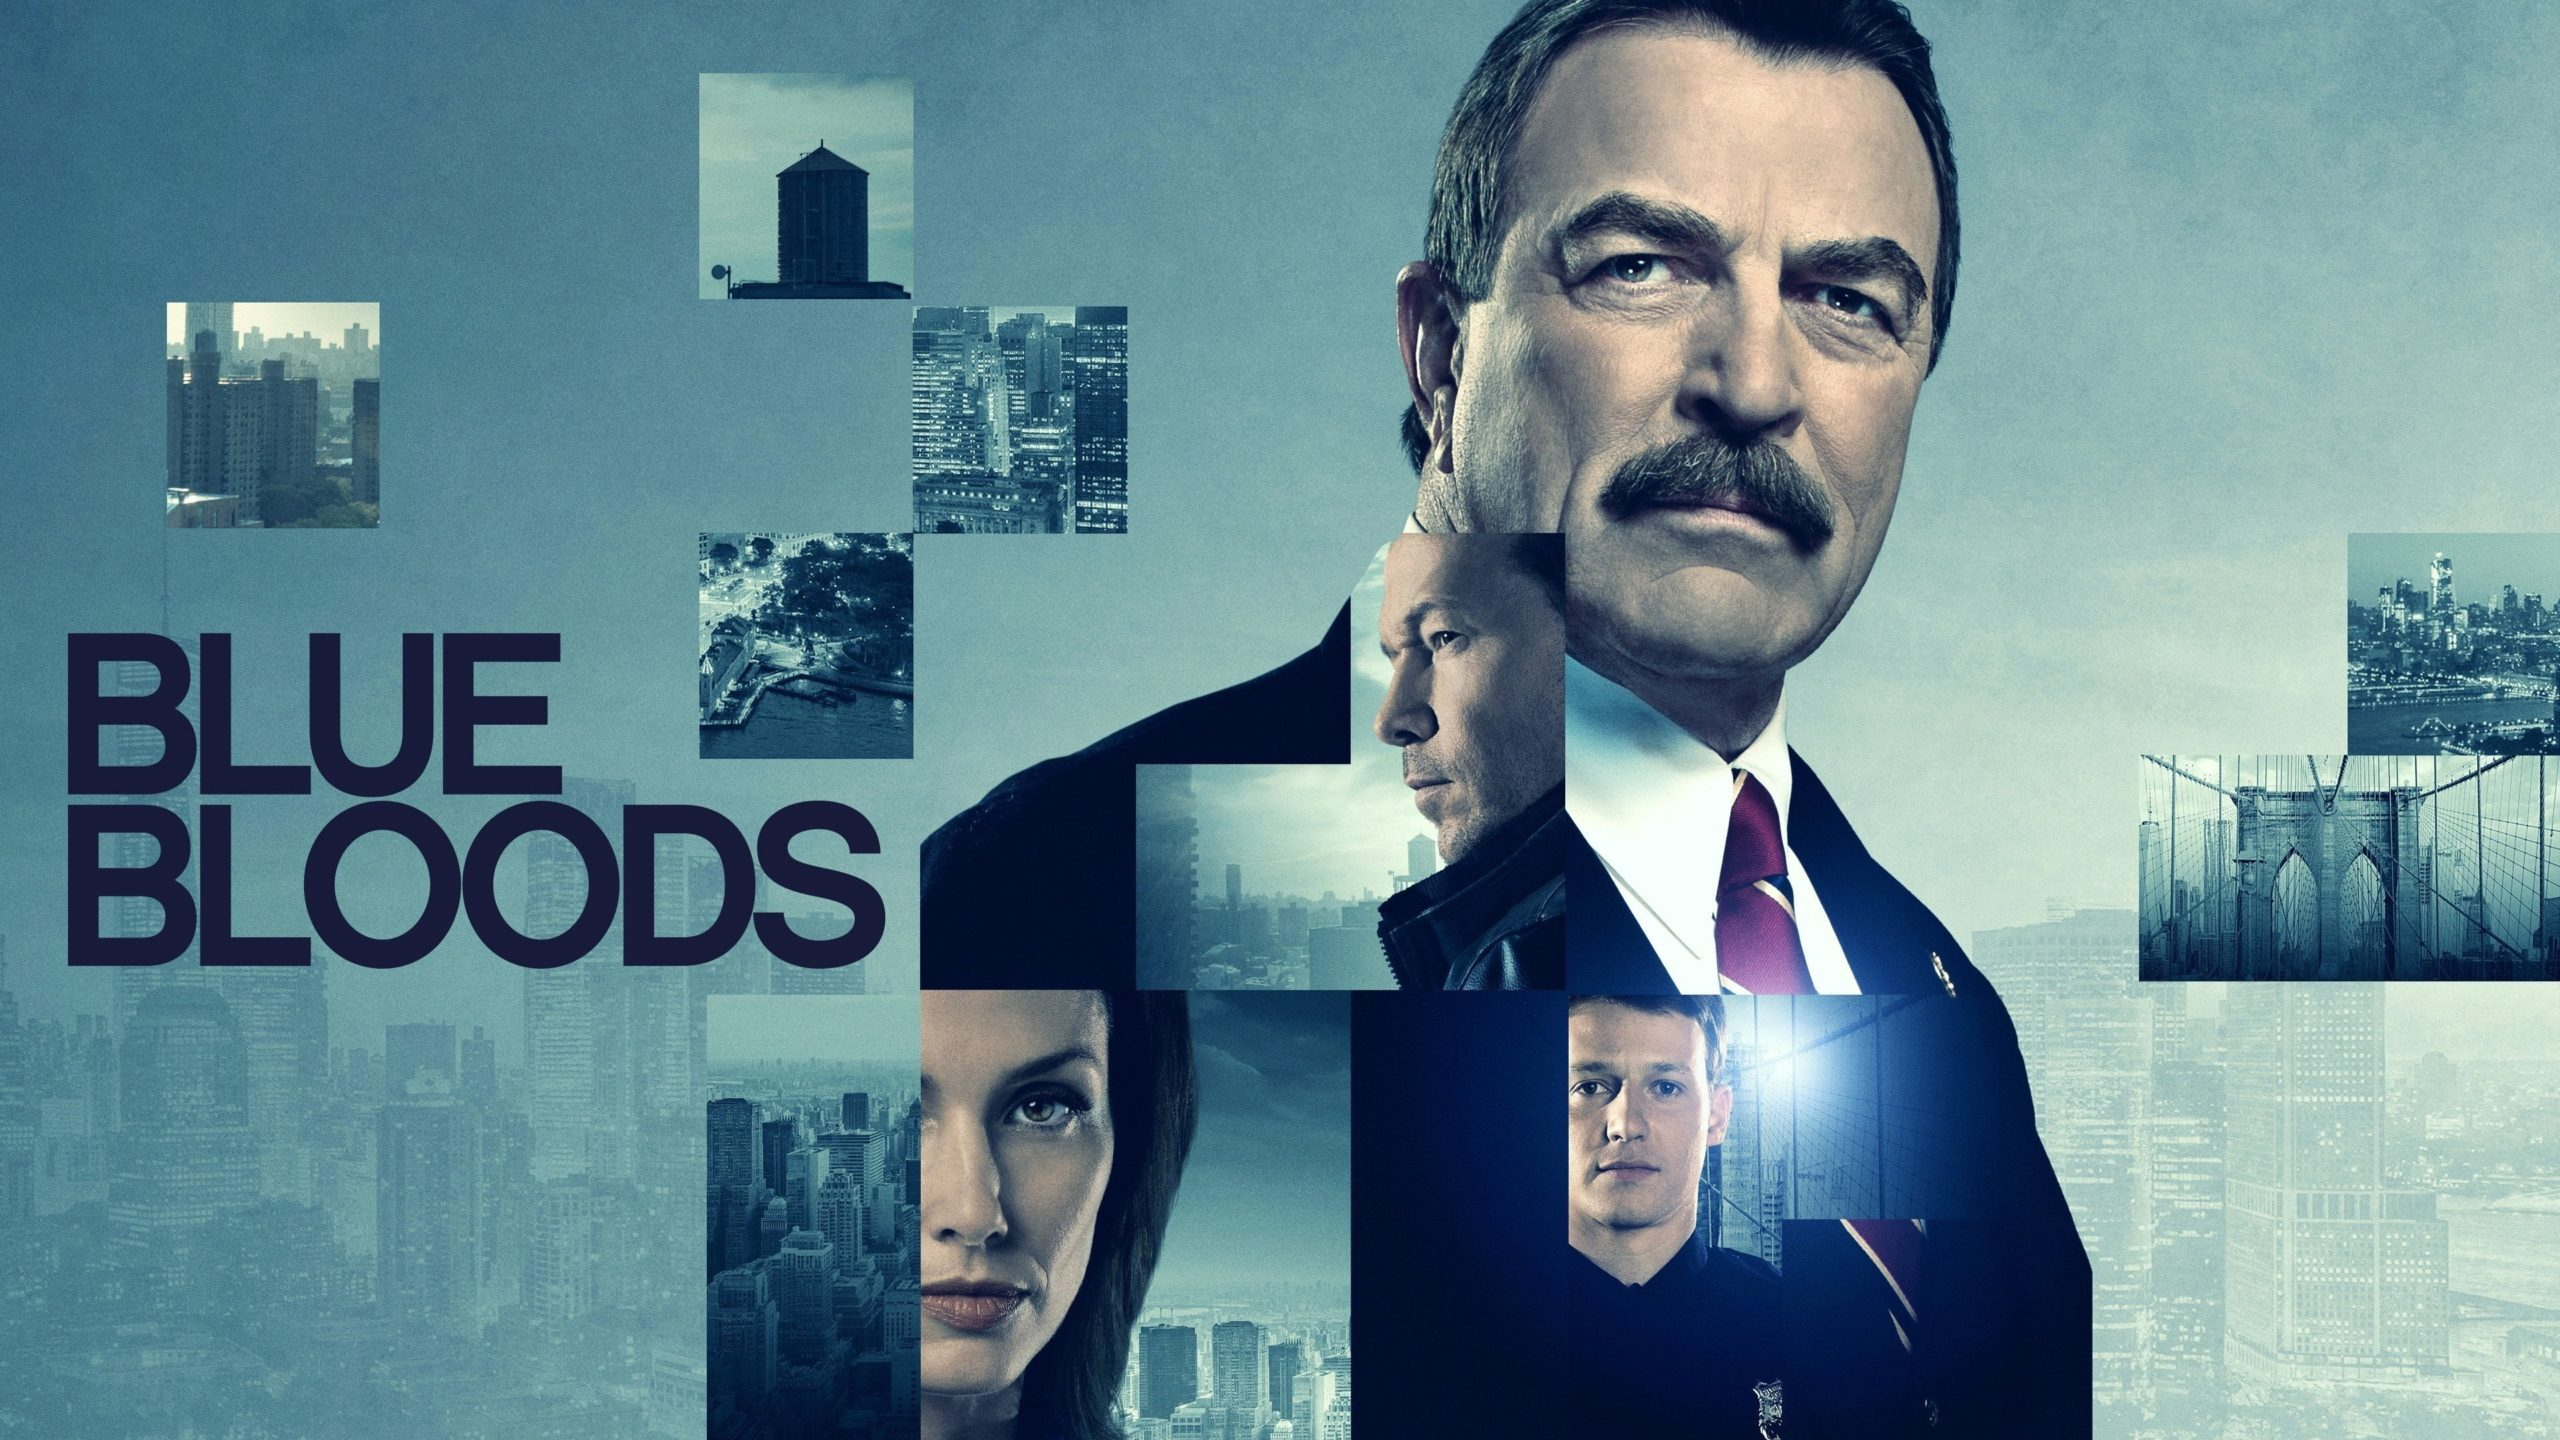 Blue Bloods Season 11 Episode 12